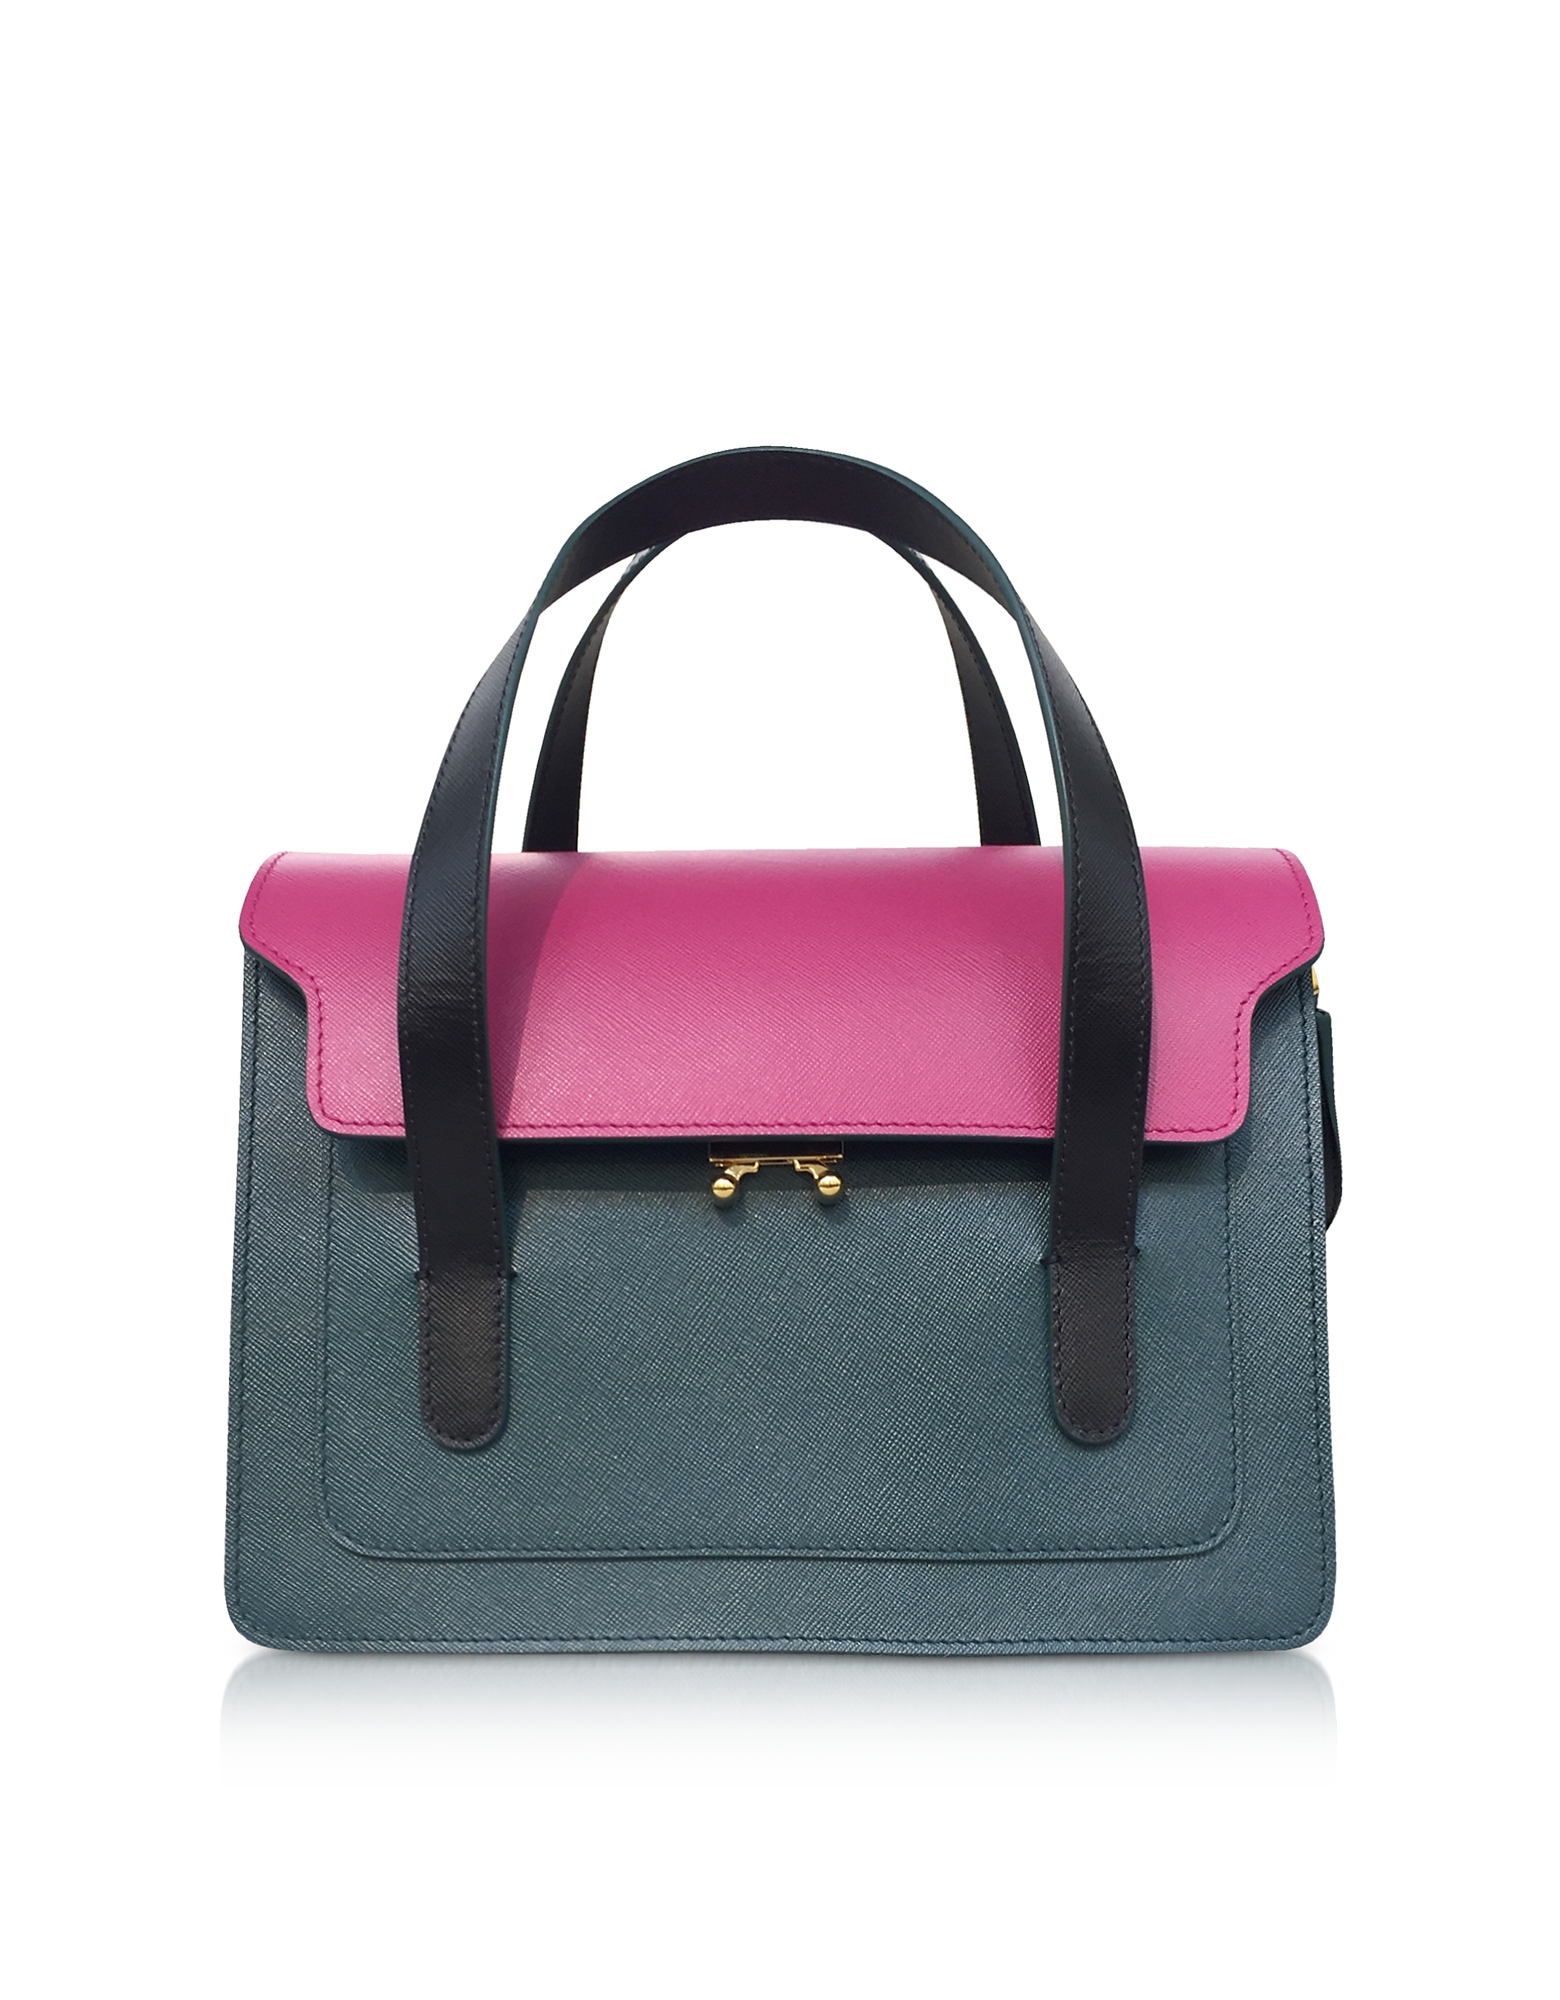 Image of Marni Designer Handbags, Cassis, Petroleum and Black Leather Satchel Bag w/Shoulder Strap